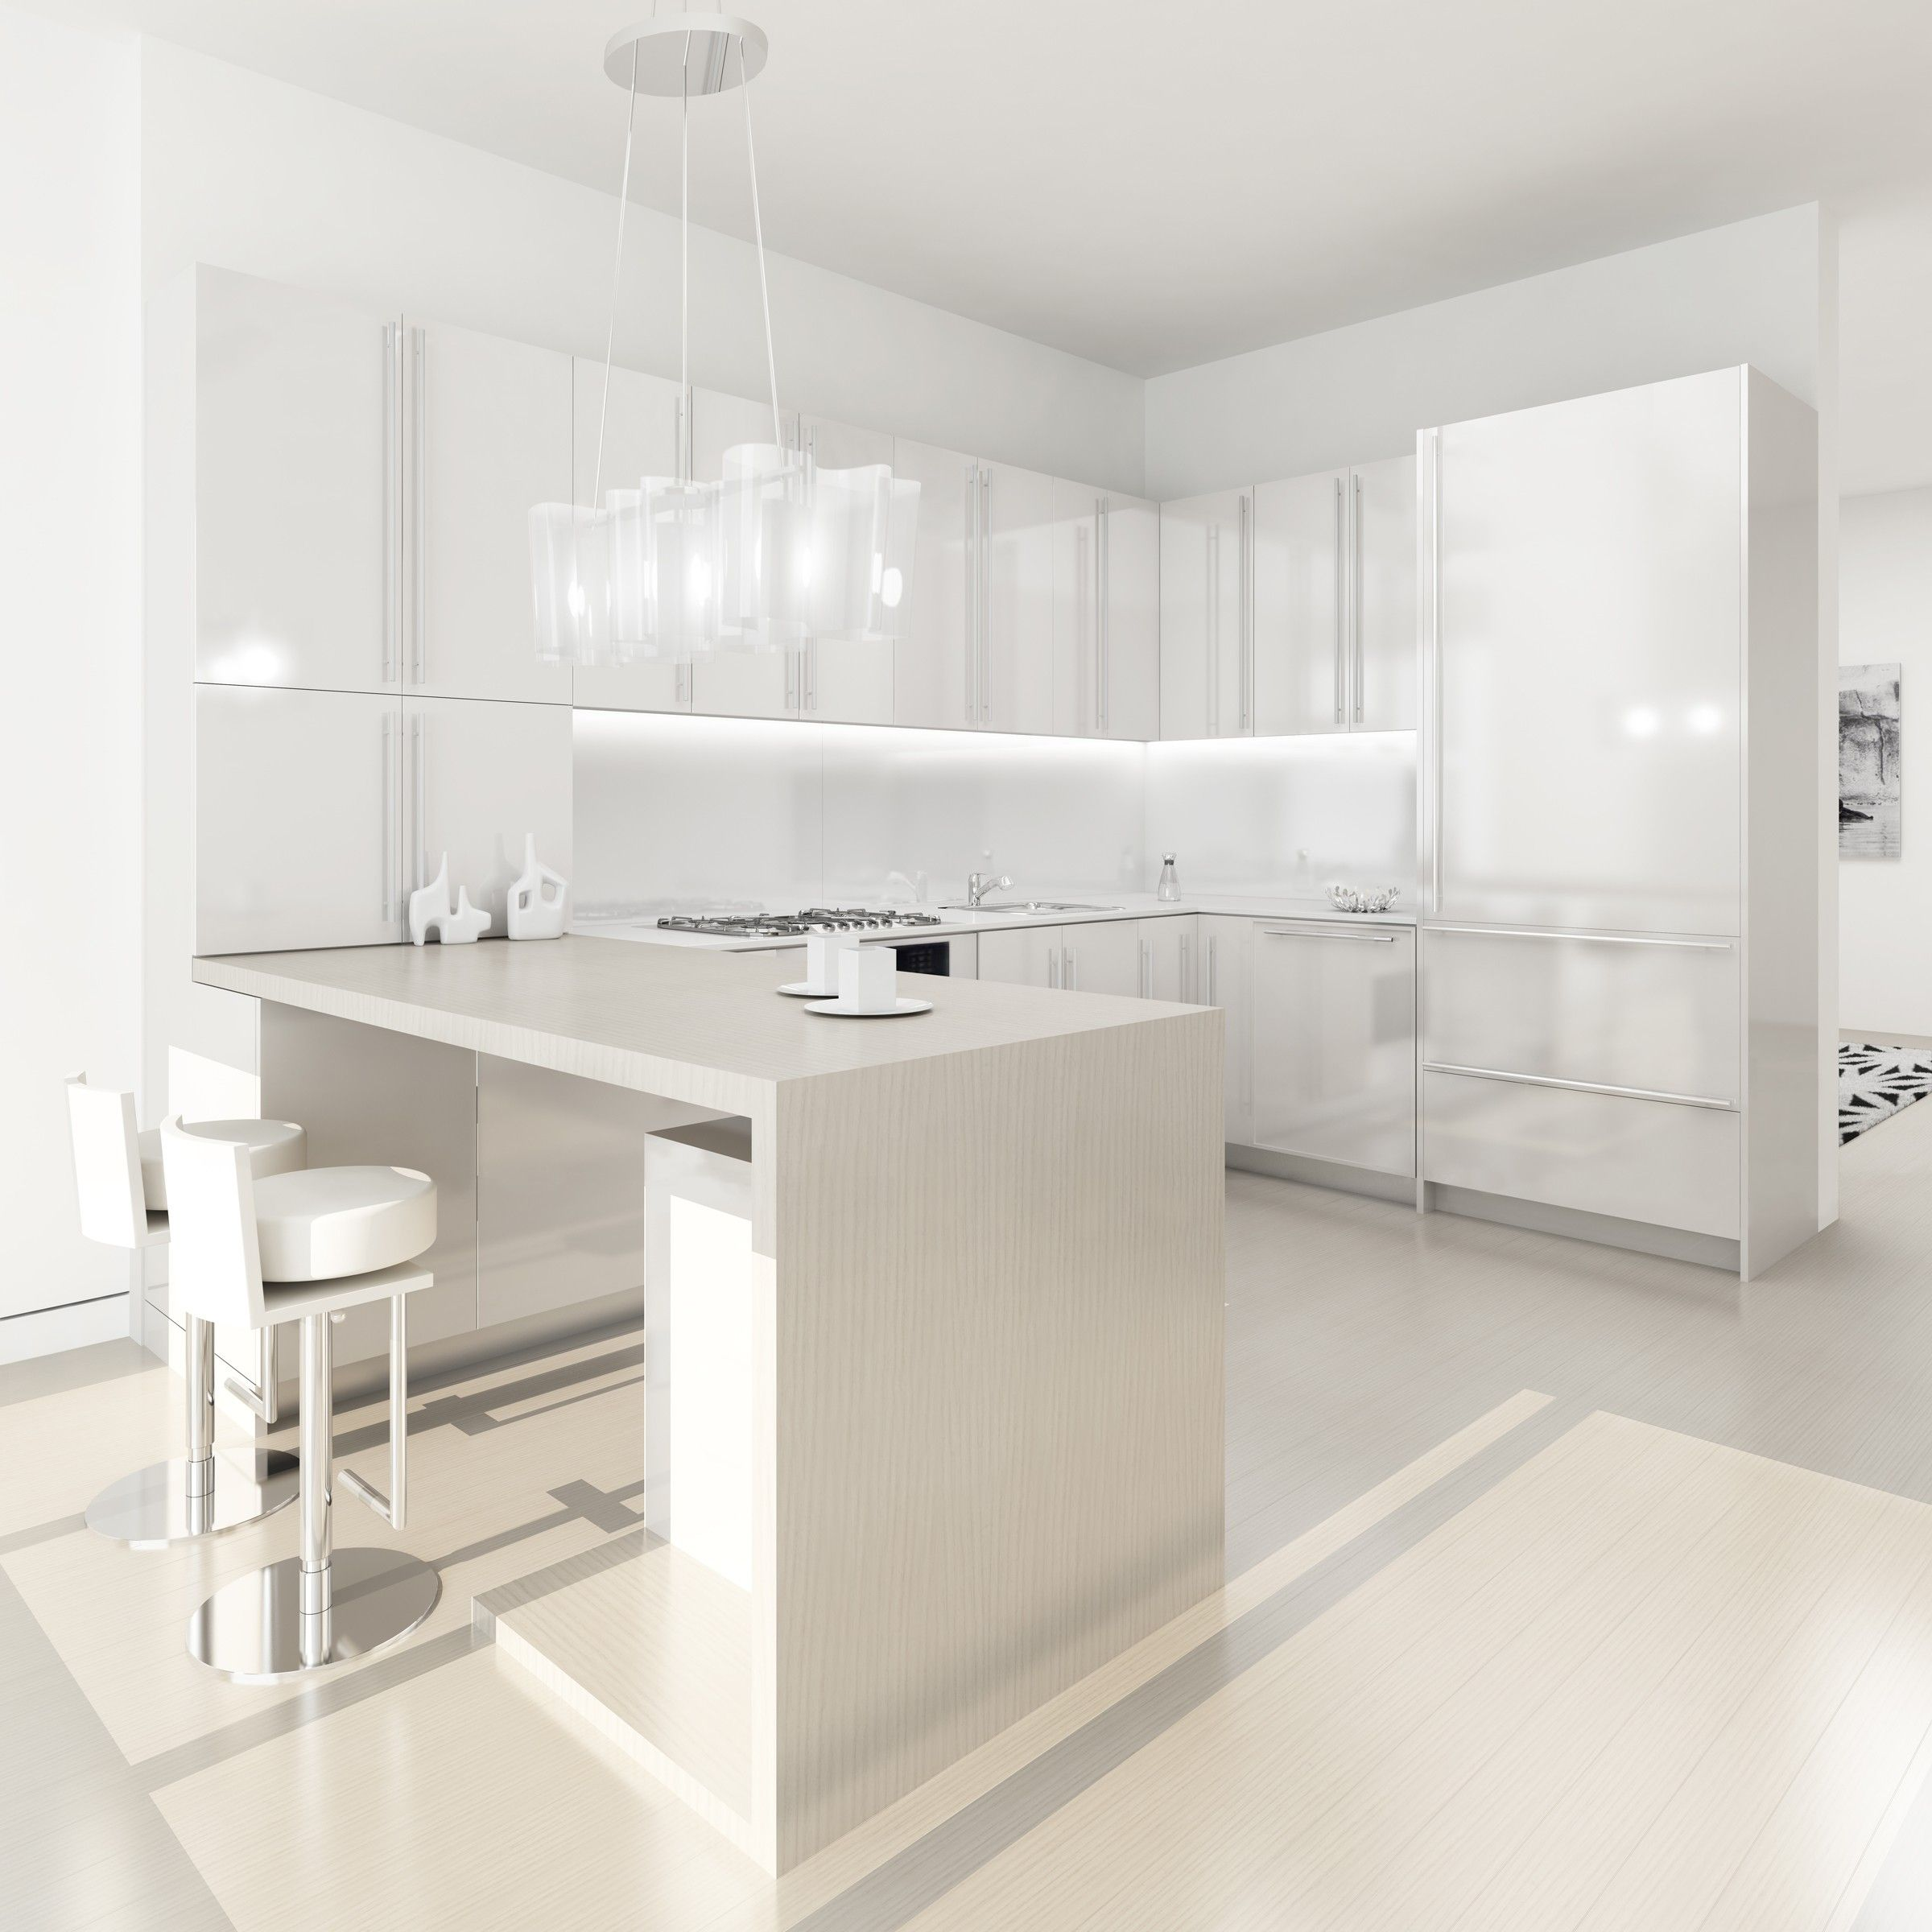 kitchensmall white modern kitchen. 30 modern white kitchen design ideas and inspiration kitchensmall